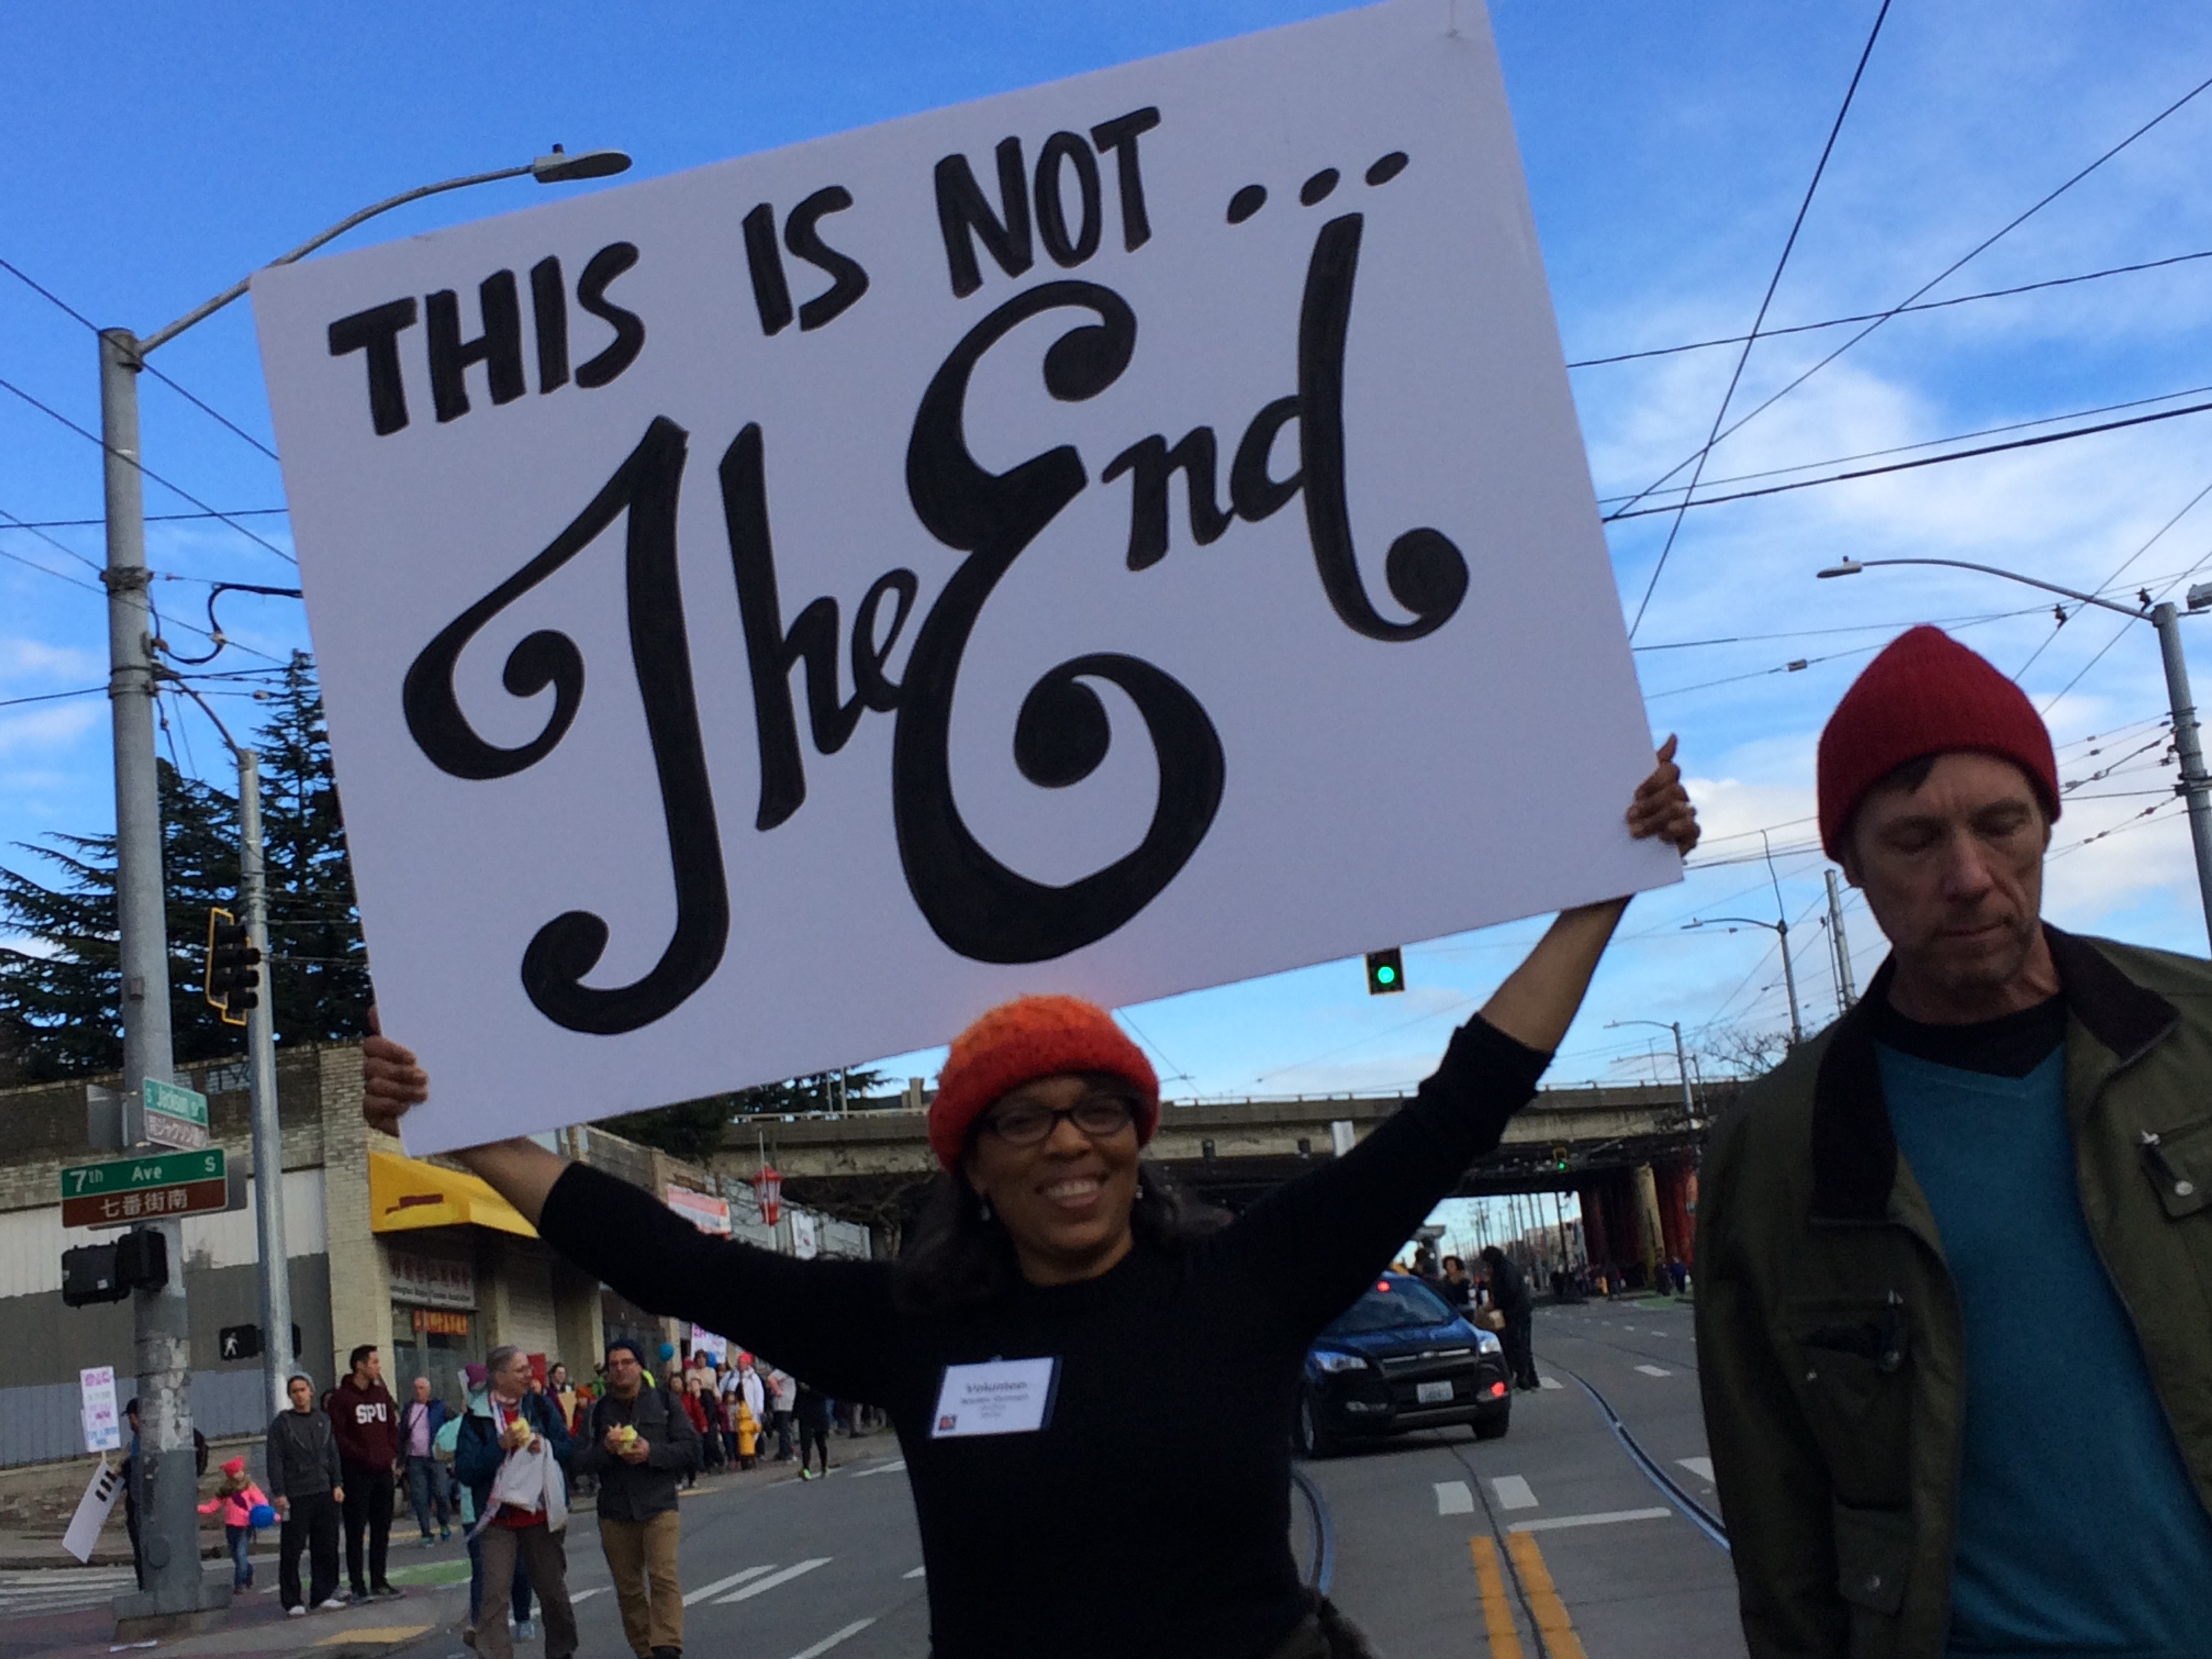 Lisa Price, a member of the planning committee, holding a sign at the end of the march. (Photo by Assunta Ng/NWAW)